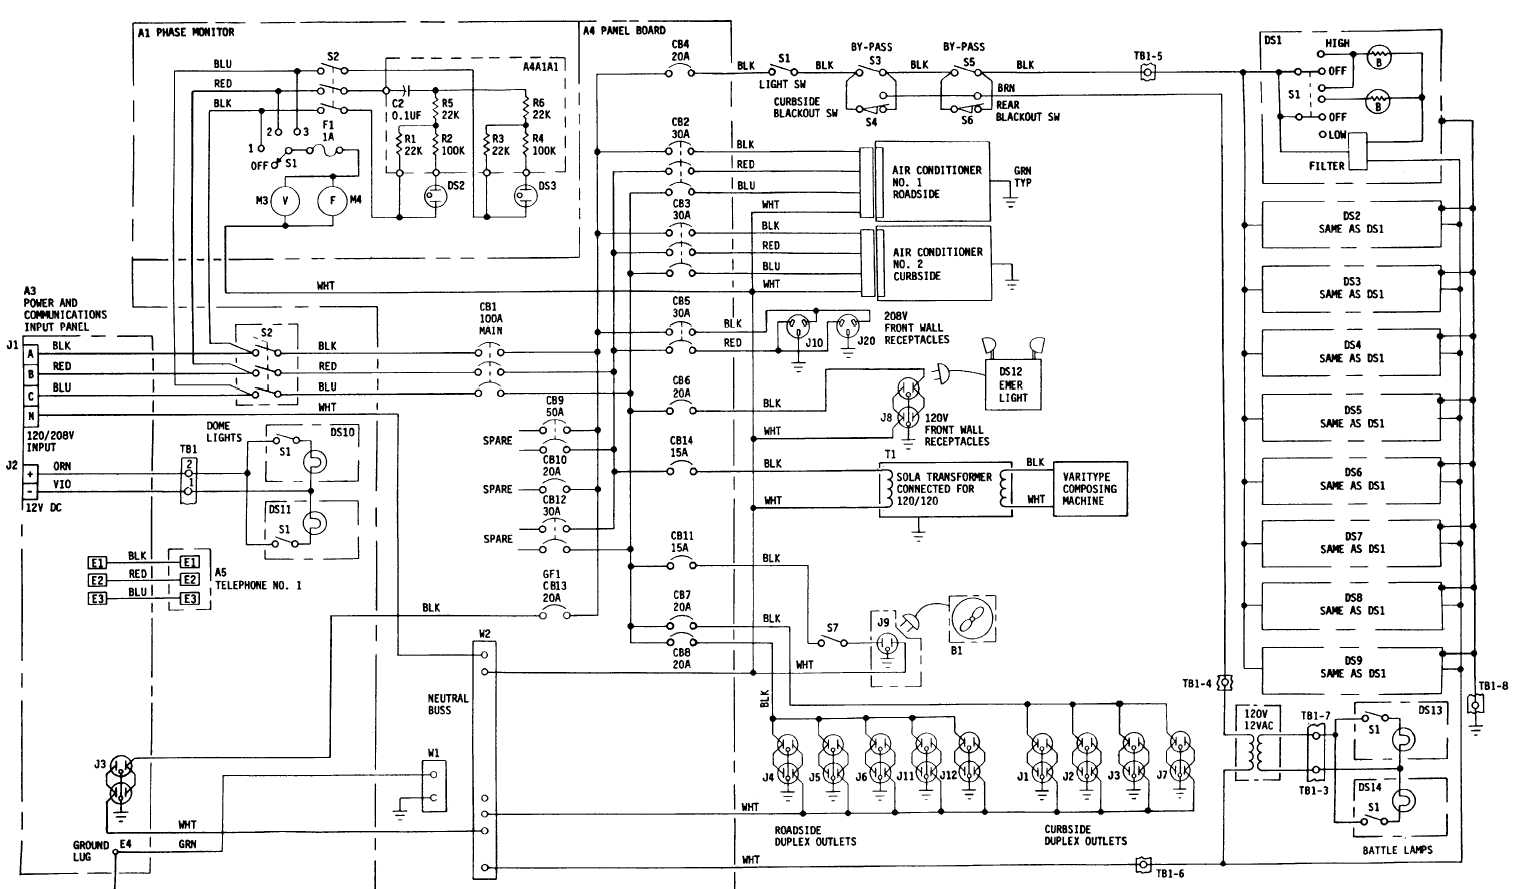 Drafting Support Section Electrical Schematic FP-13/(FP-14 b l a n k)